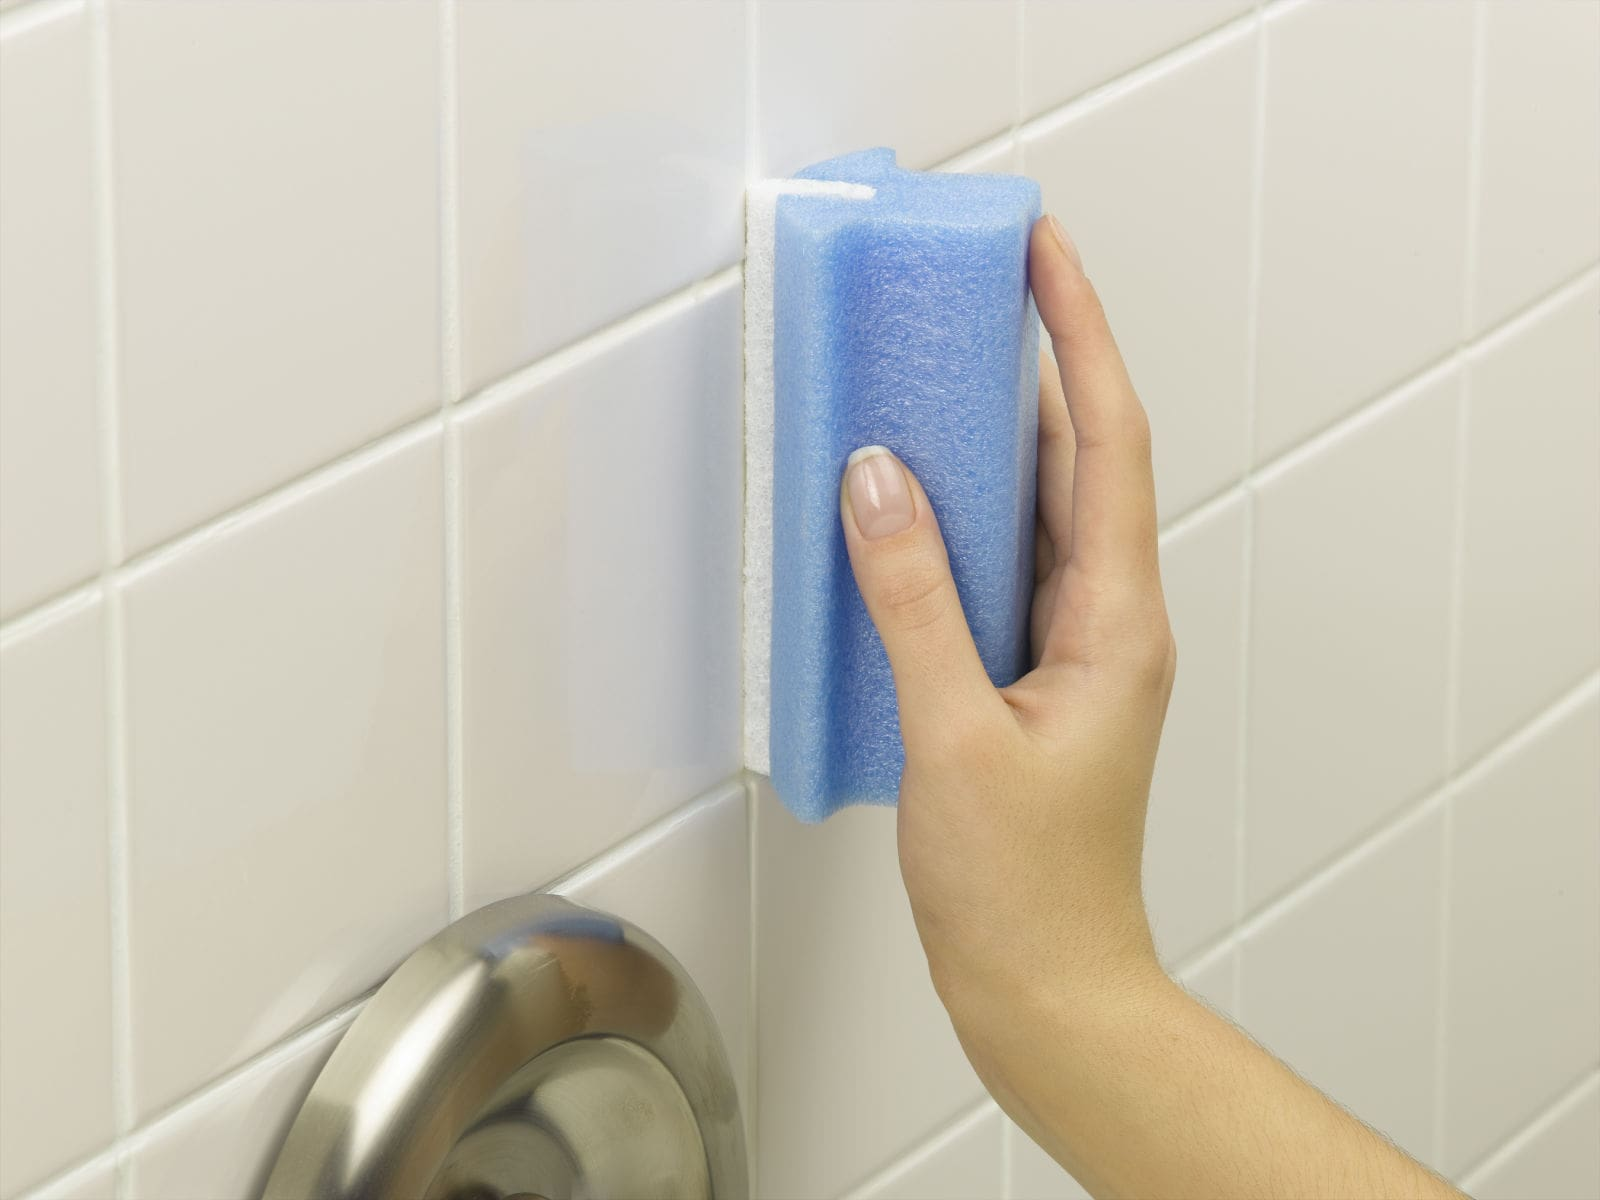 7 Genius tips to deep clean a bathroom. Cleaning grout seams with baking soda and vinegar